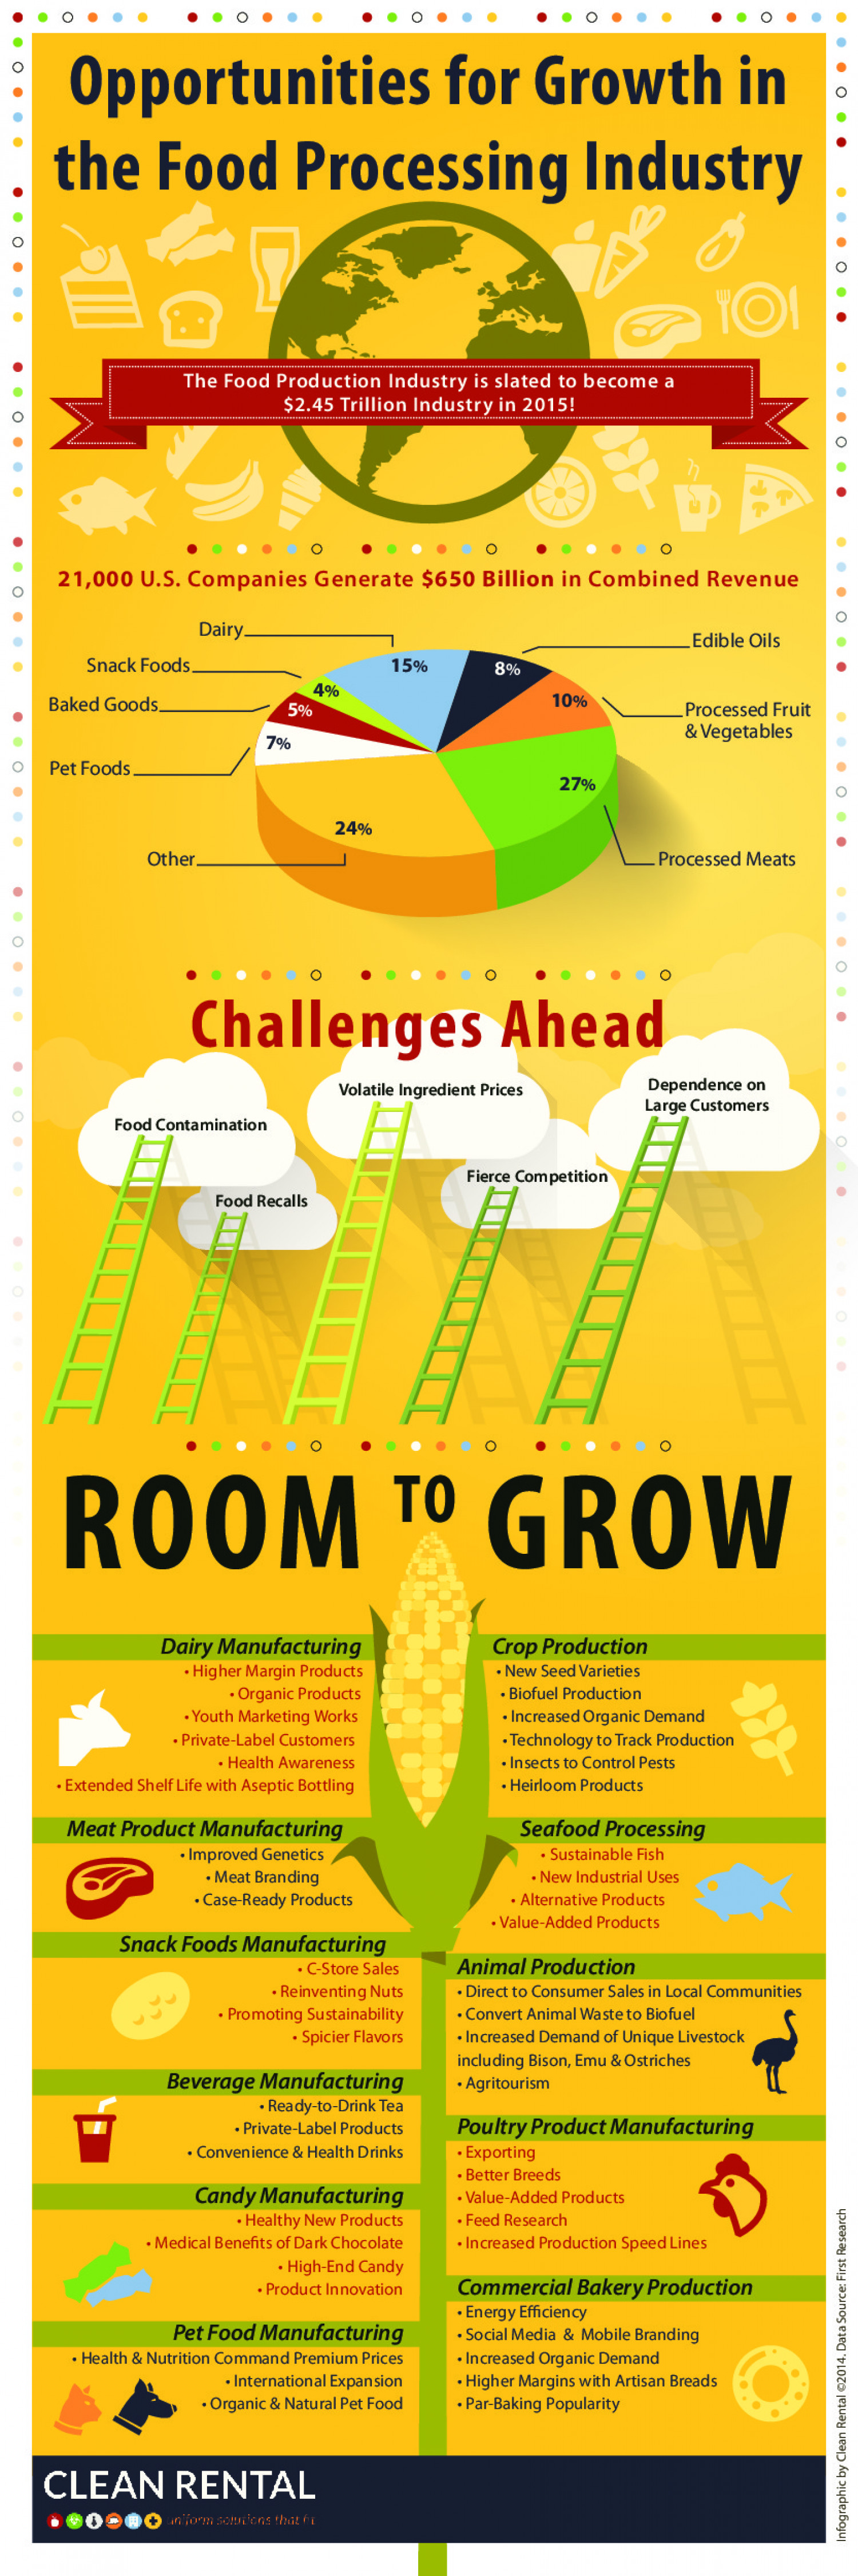 Opportunities For Growth in the Food Processing Industry Infographic